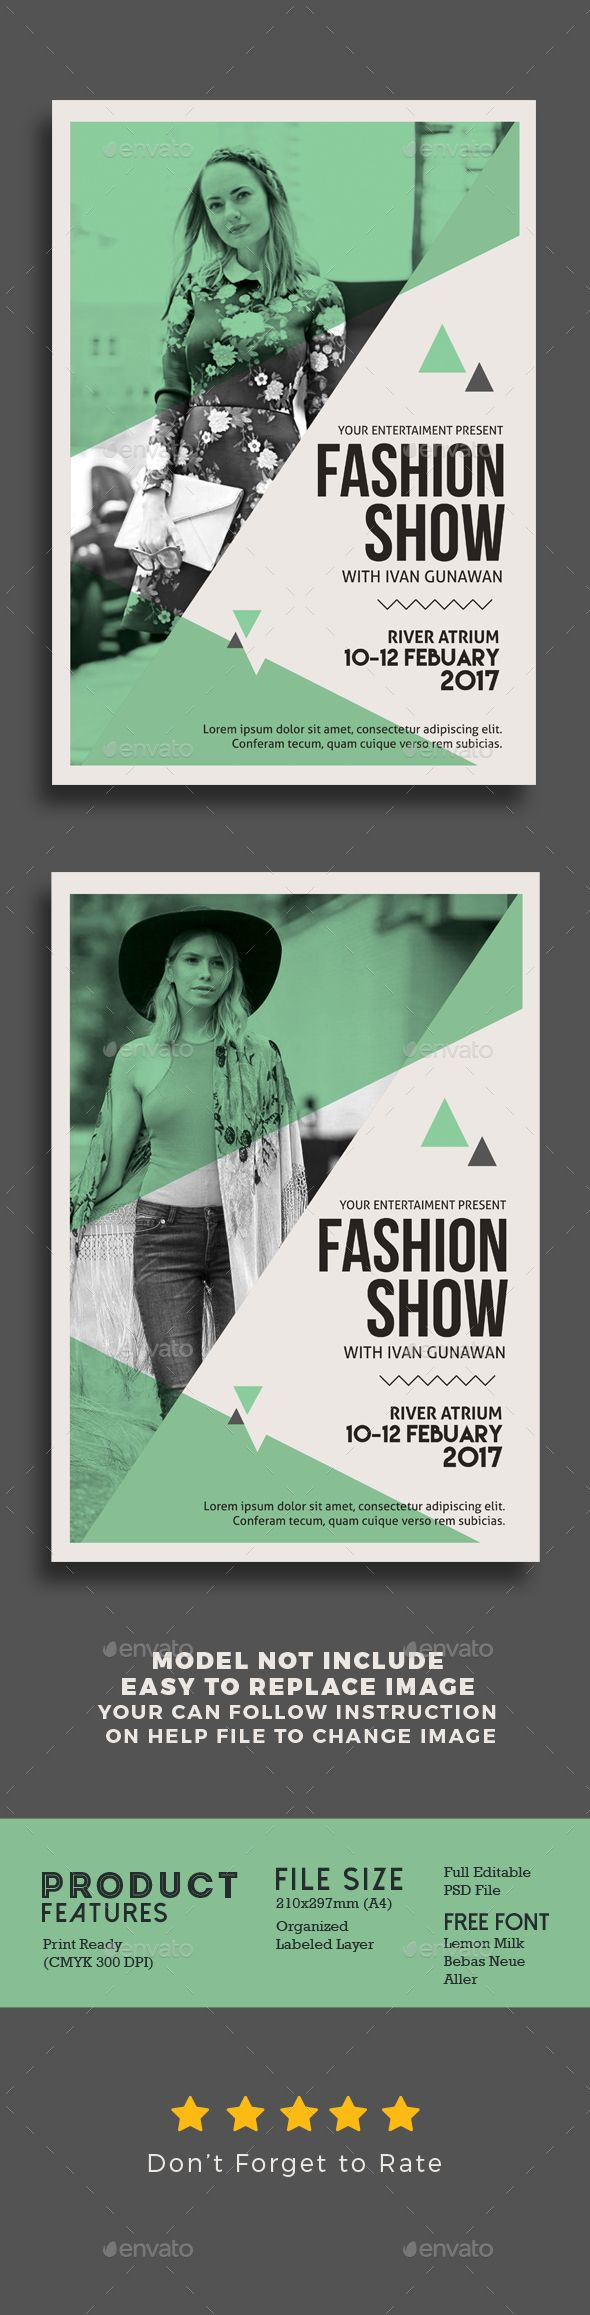 Fashion Show Flyer Design Template - Events Flyers Design Template PSD. Download here: https://graphicriver.net/item/fashion-show-flyer/19357652?ref=yinkira